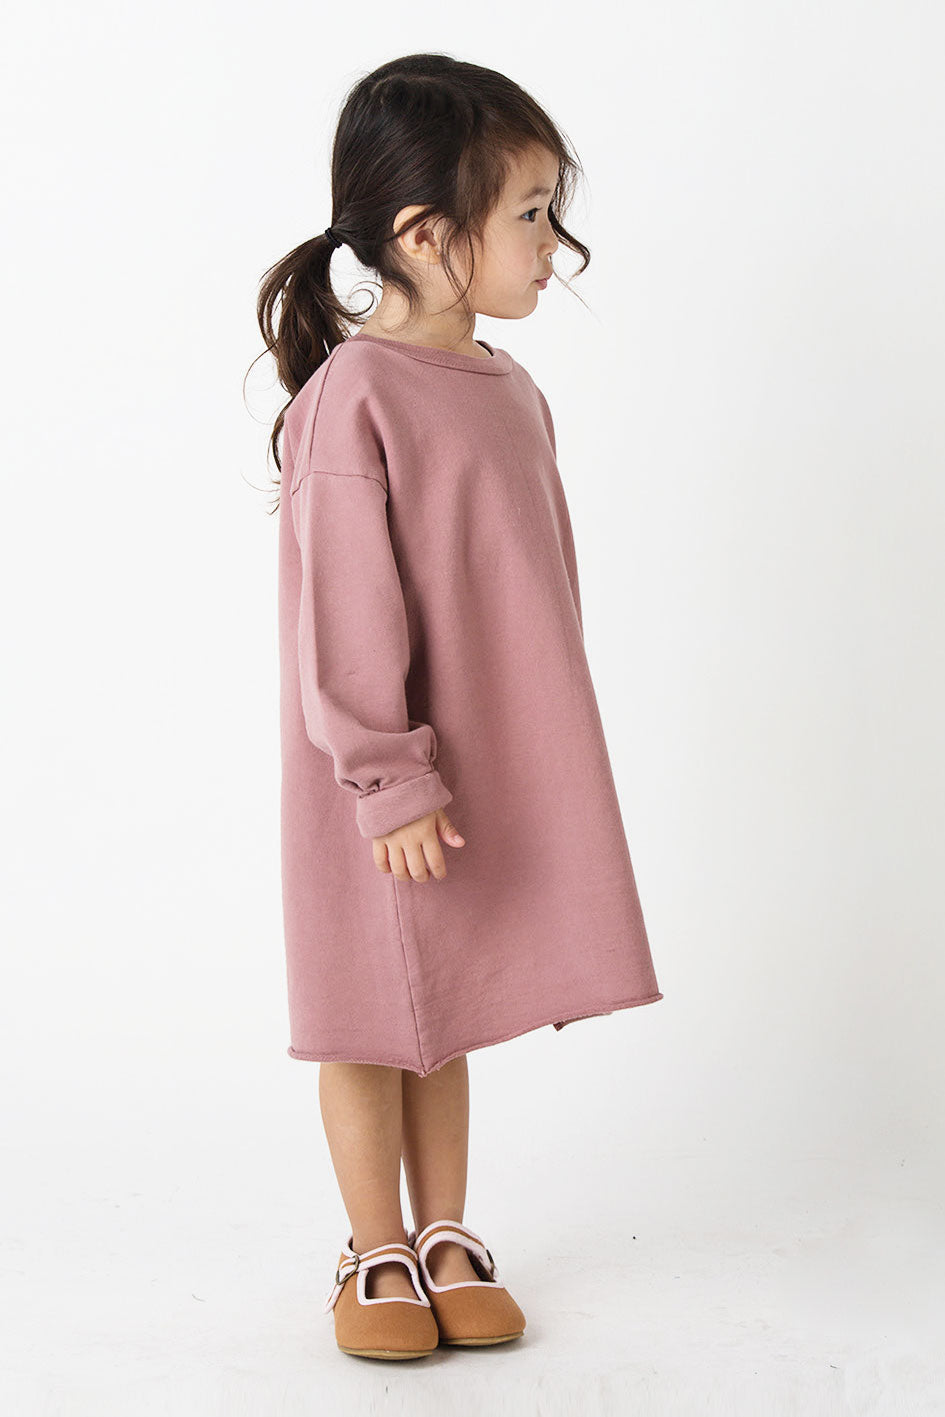 Go Gently Nation Solid Puff Dress - Cinnamon